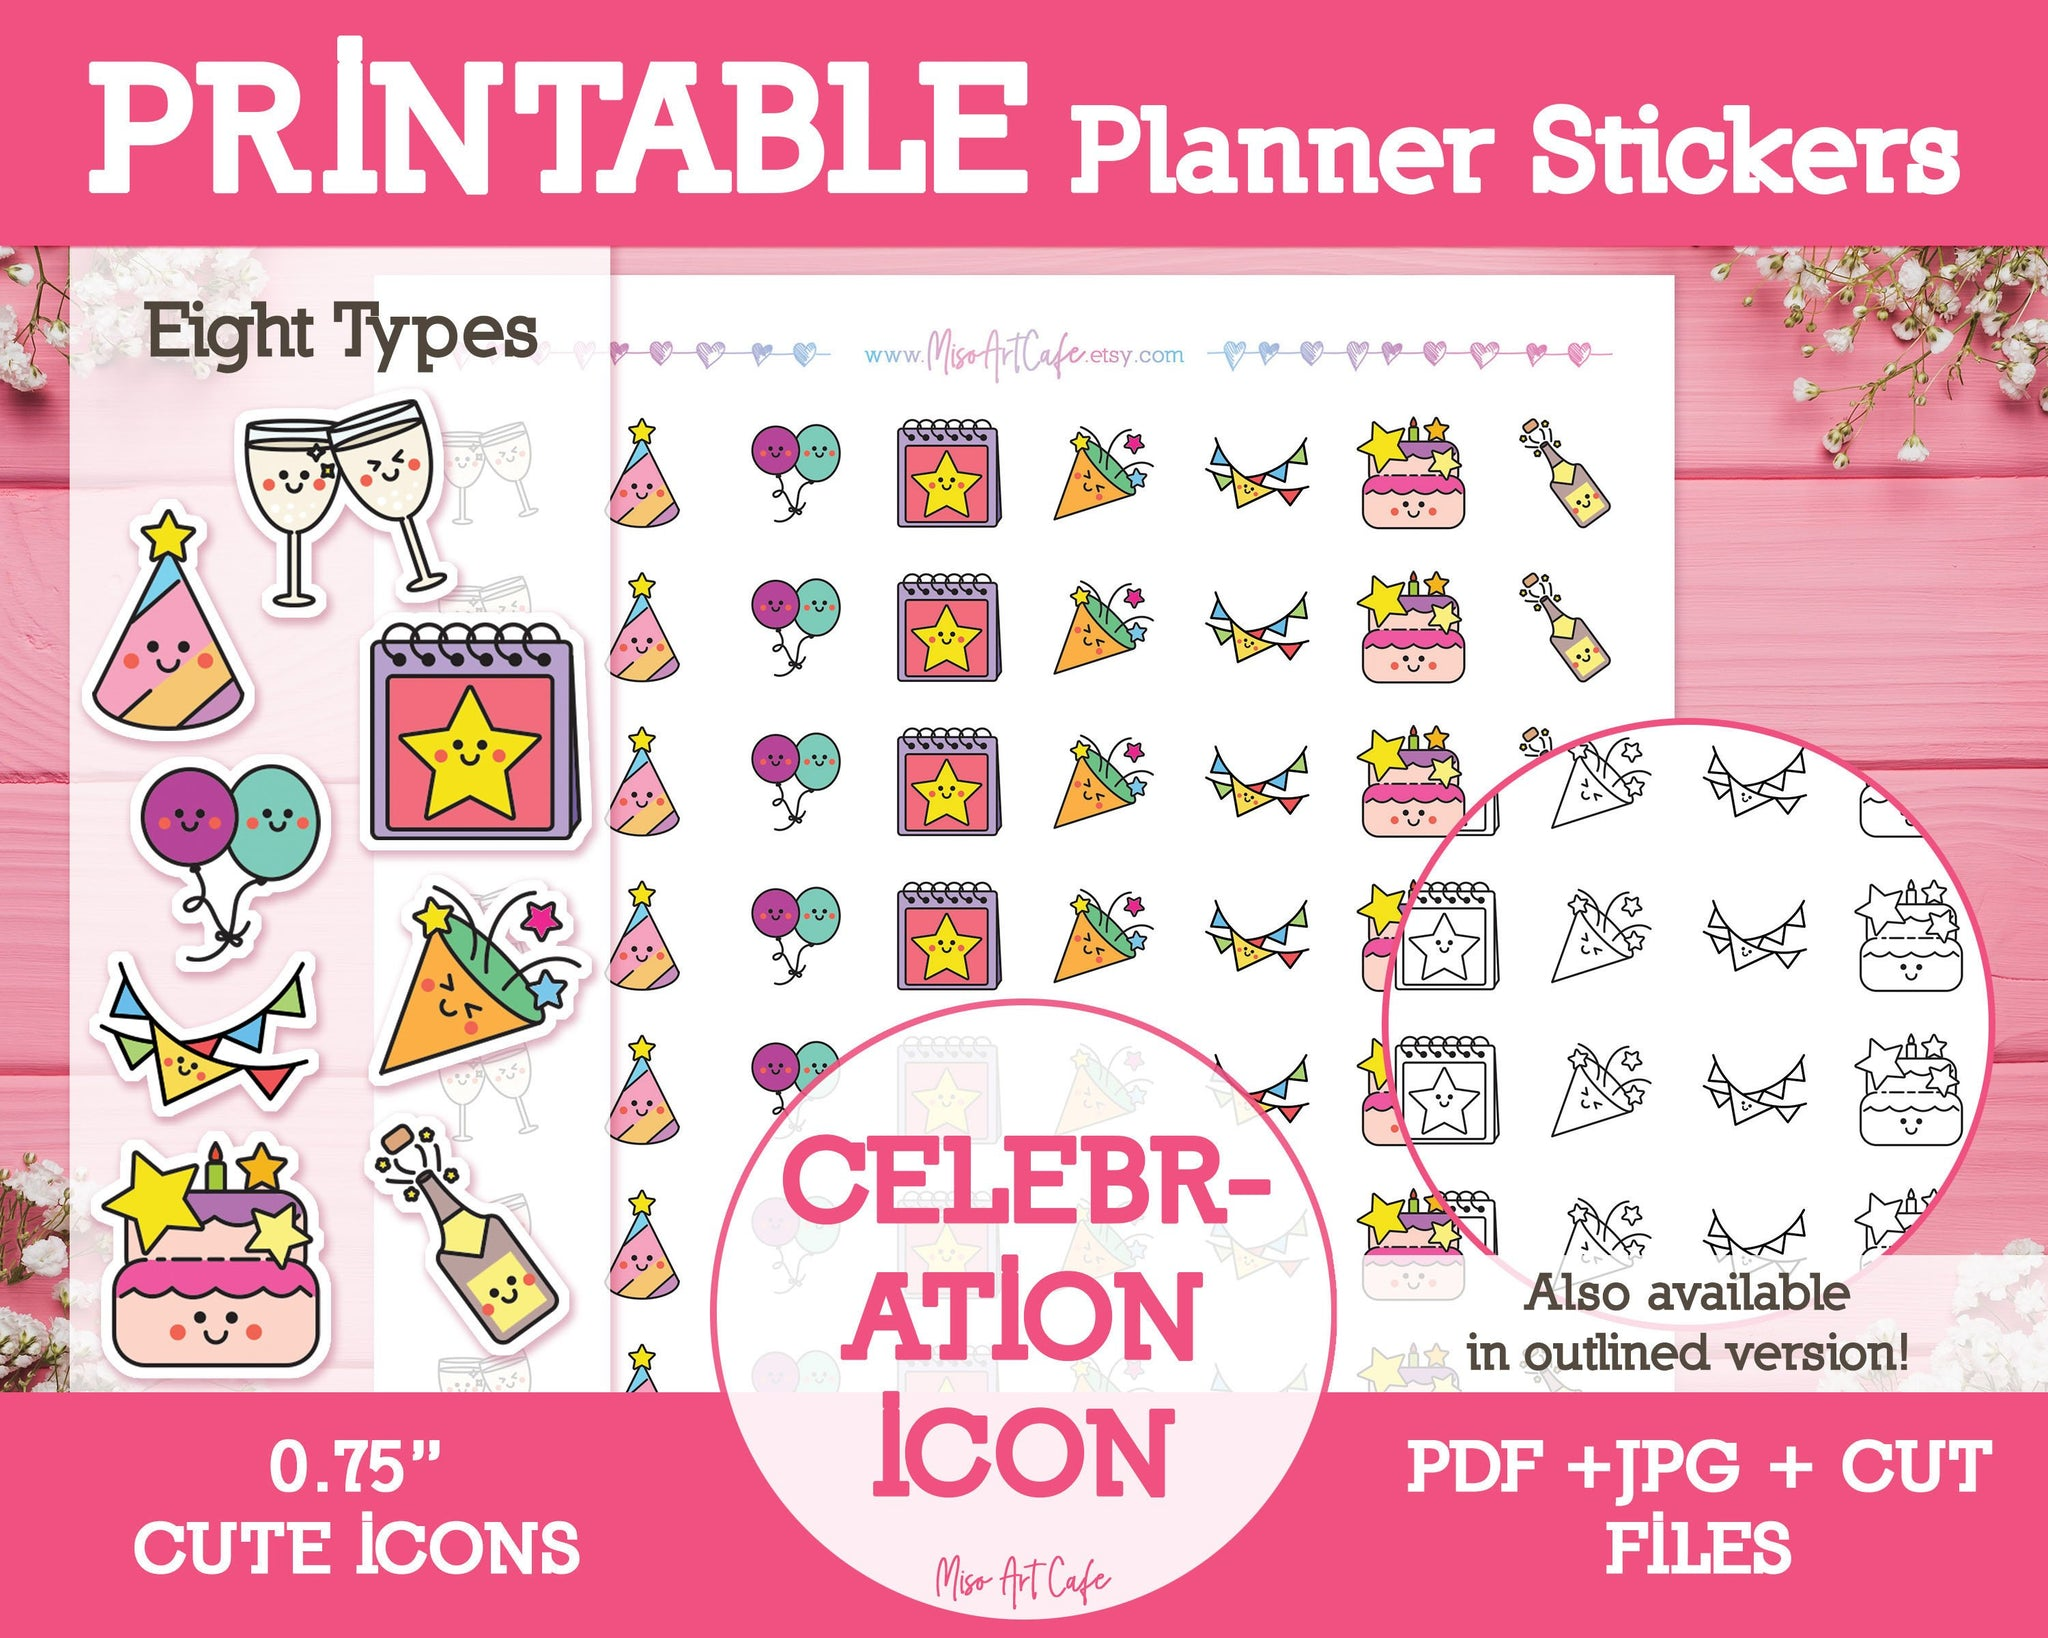 Printable Celebration Icons - Cute Vector Icon Planner Stickers - Miso Art Cafe